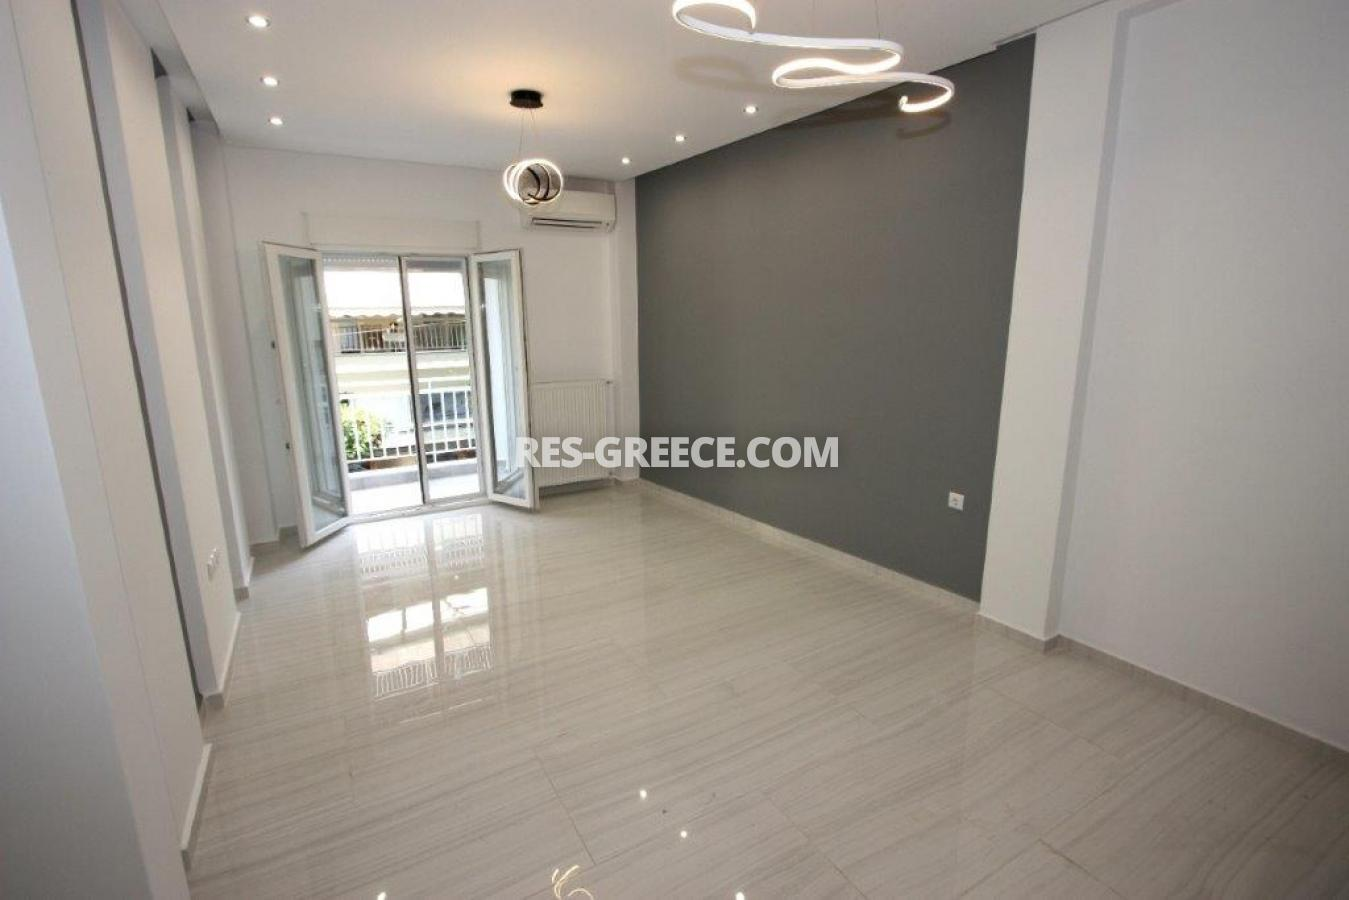 Poli 21, Central Macedonia, Greece - Apartment for residence or for long term rent - Photo 9